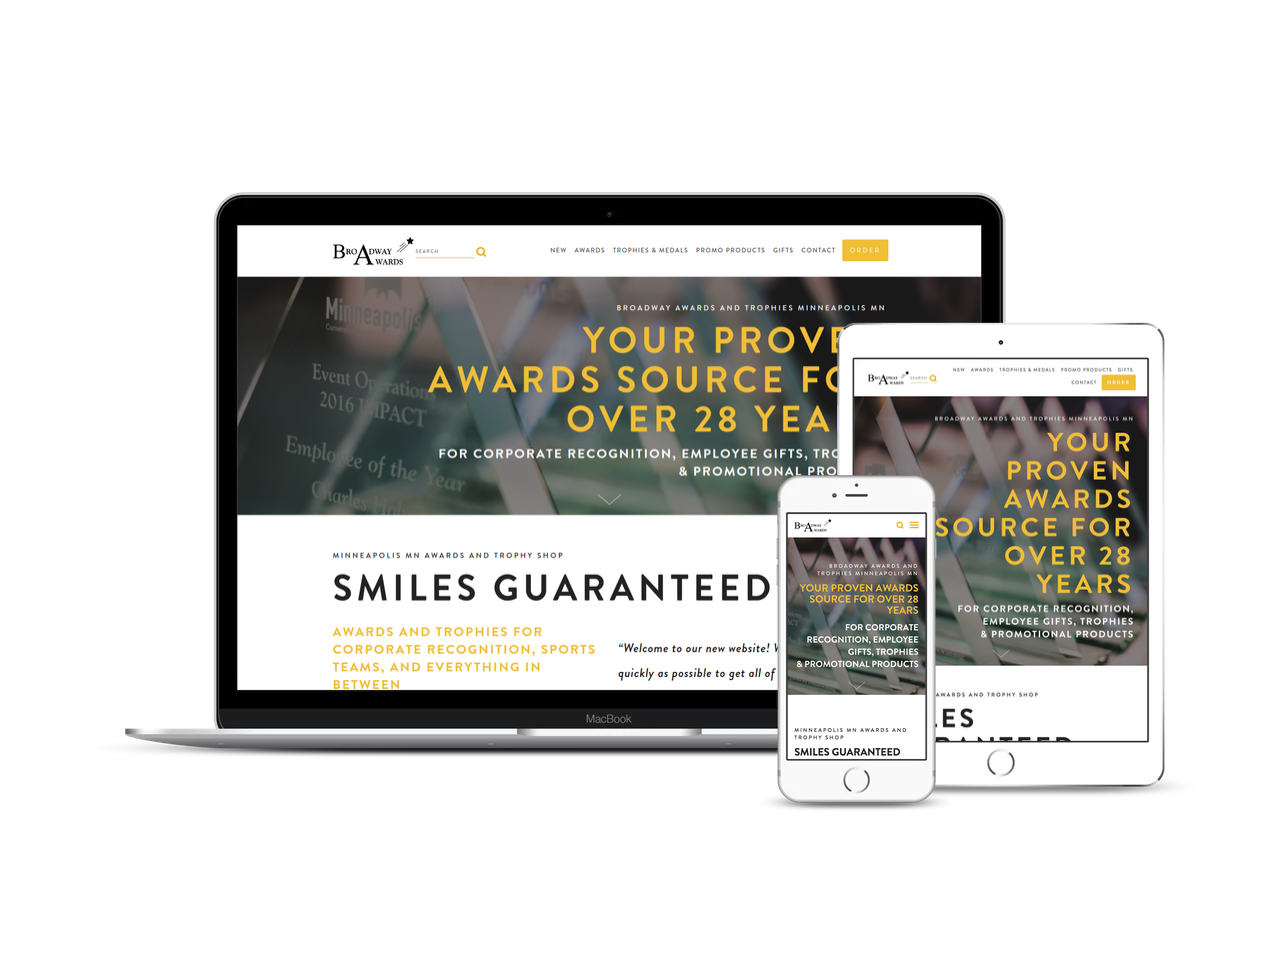 Before & After - Check out how we awarded their website with a facelift